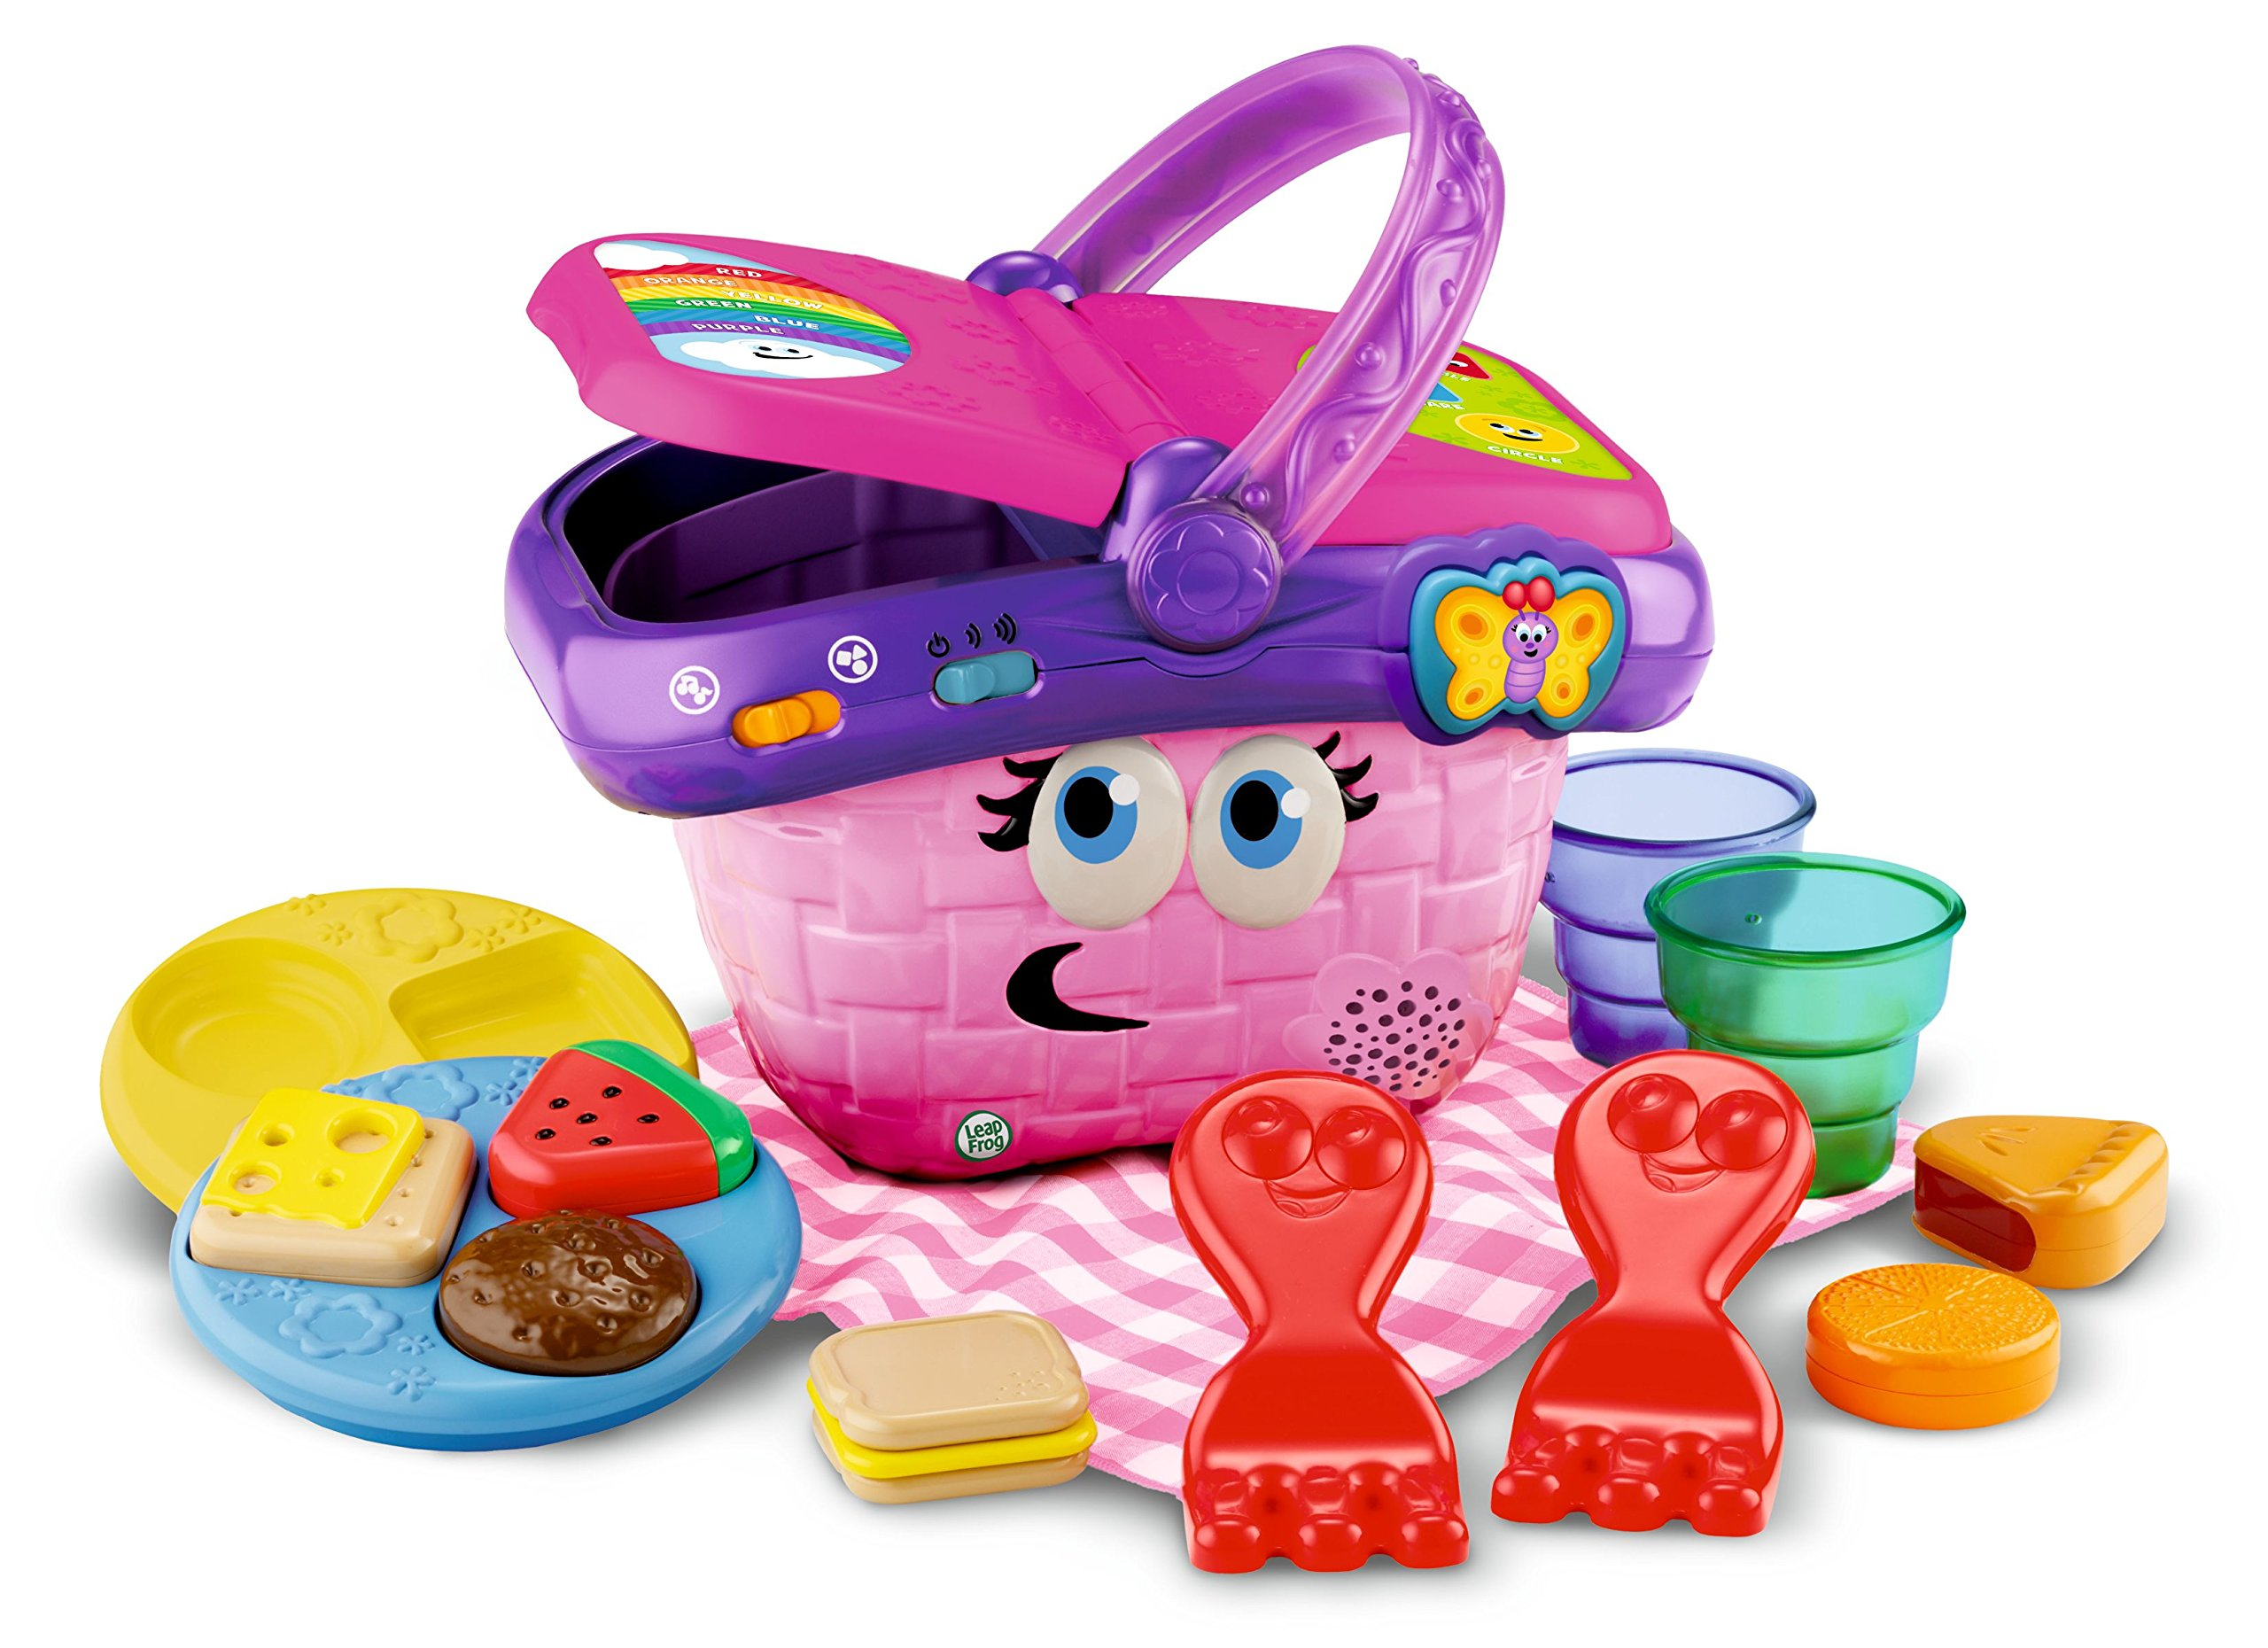 LeapFrog Shapes And Sharing Picnic Basket, 7.66 x 6.50 x 10 Inches